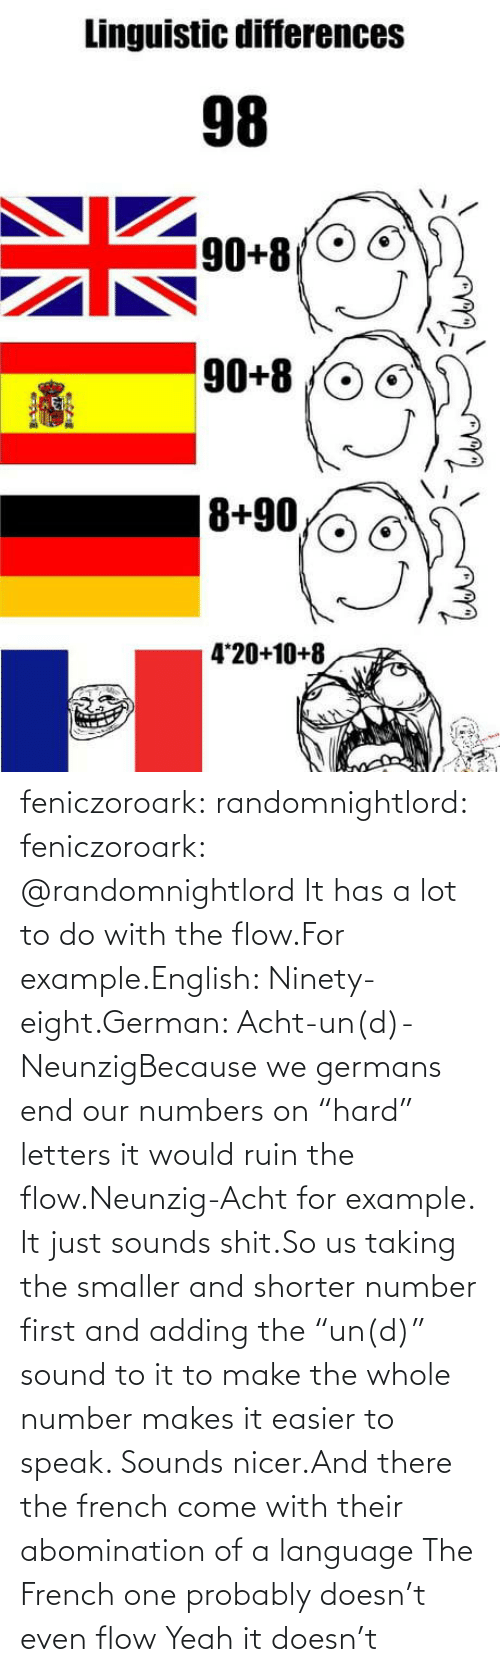 "Ruin: feniczoroark:  randomnightlord:  feniczoroark:  @randomnightlord    It has a lot to do with the flow.For example.English: Ninety-eight.German: Acht-un(d)-NeunzigBecause we germans end our numbers on ""hard"" letters it would ruin the flow.Neunzig-Acht for example. It just sounds shit.So us taking the smaller and shorter number first and adding the ""un(d)"" sound to it to make the whole number makes it easier to speak. Sounds nicer.And there the french come with their abomination of a language    The French one probably doesn't even flow   Yeah it doesn't"